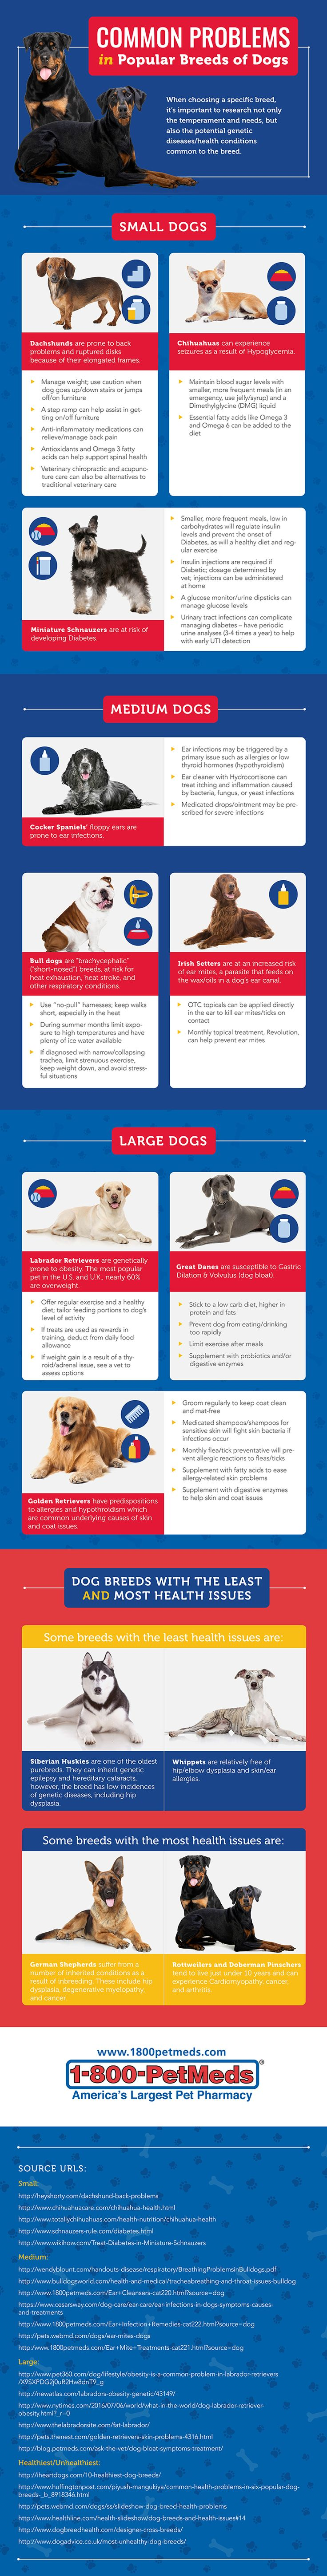 Common Health Problems in Popular Dog Breeds Infographic